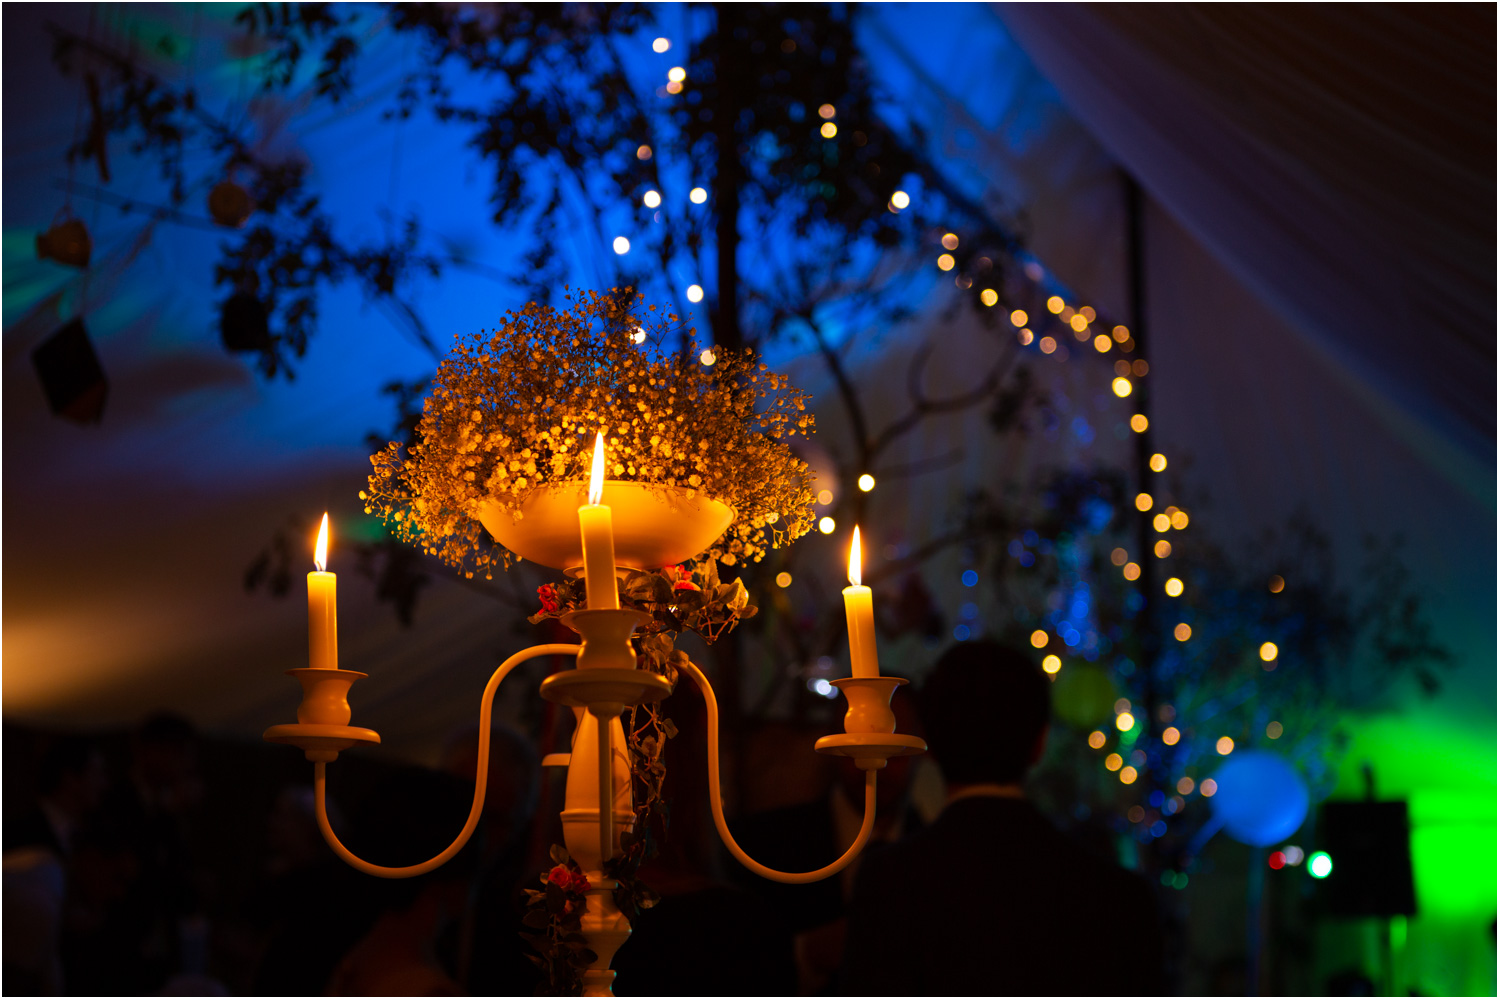 16 night time candelabra with marquee greenery and fairy lights